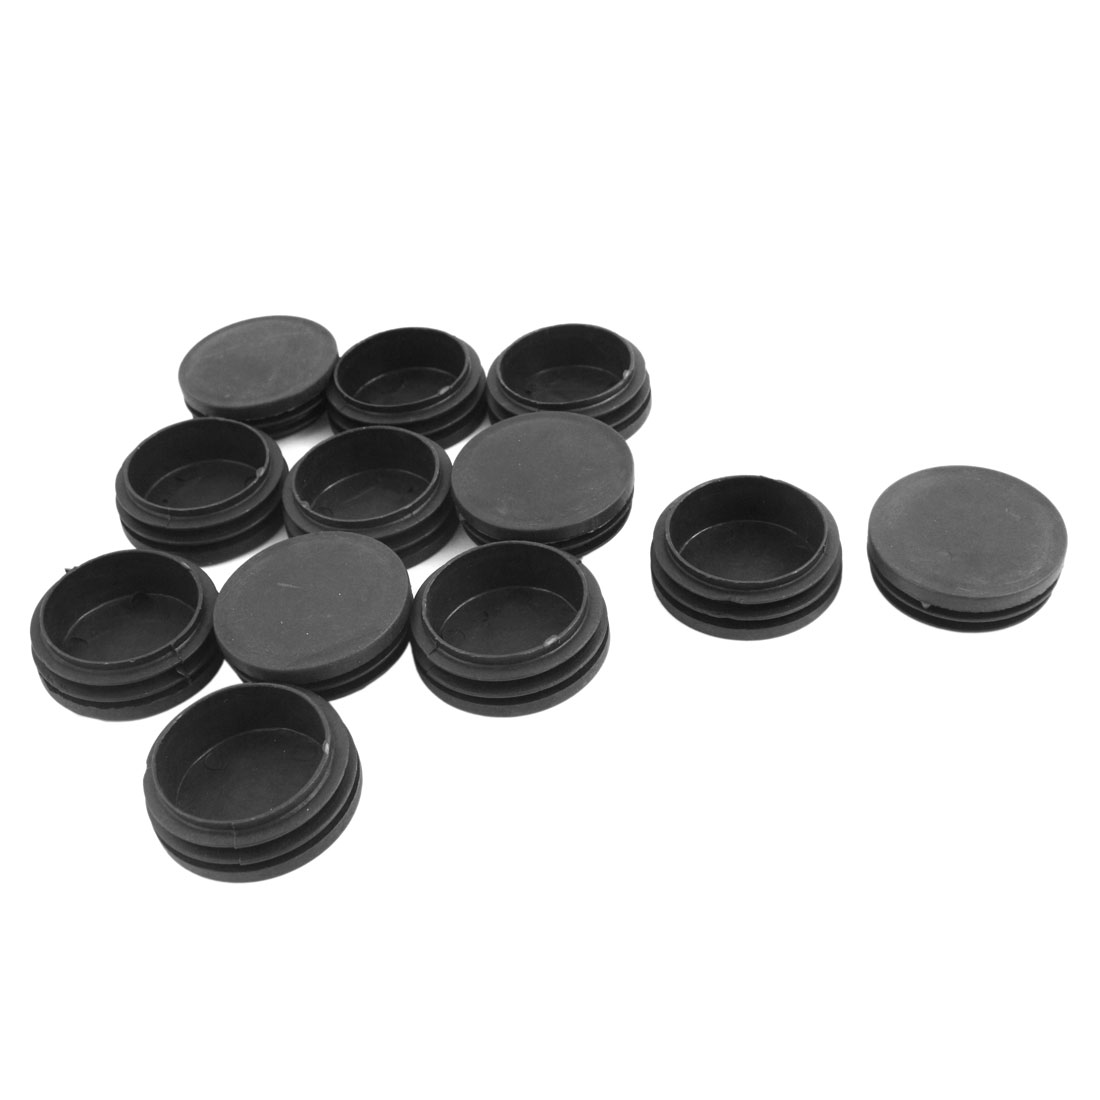 12 Pcs Black Plastic 50mm Dia Round Tubing Pipe Insert Caps Covers